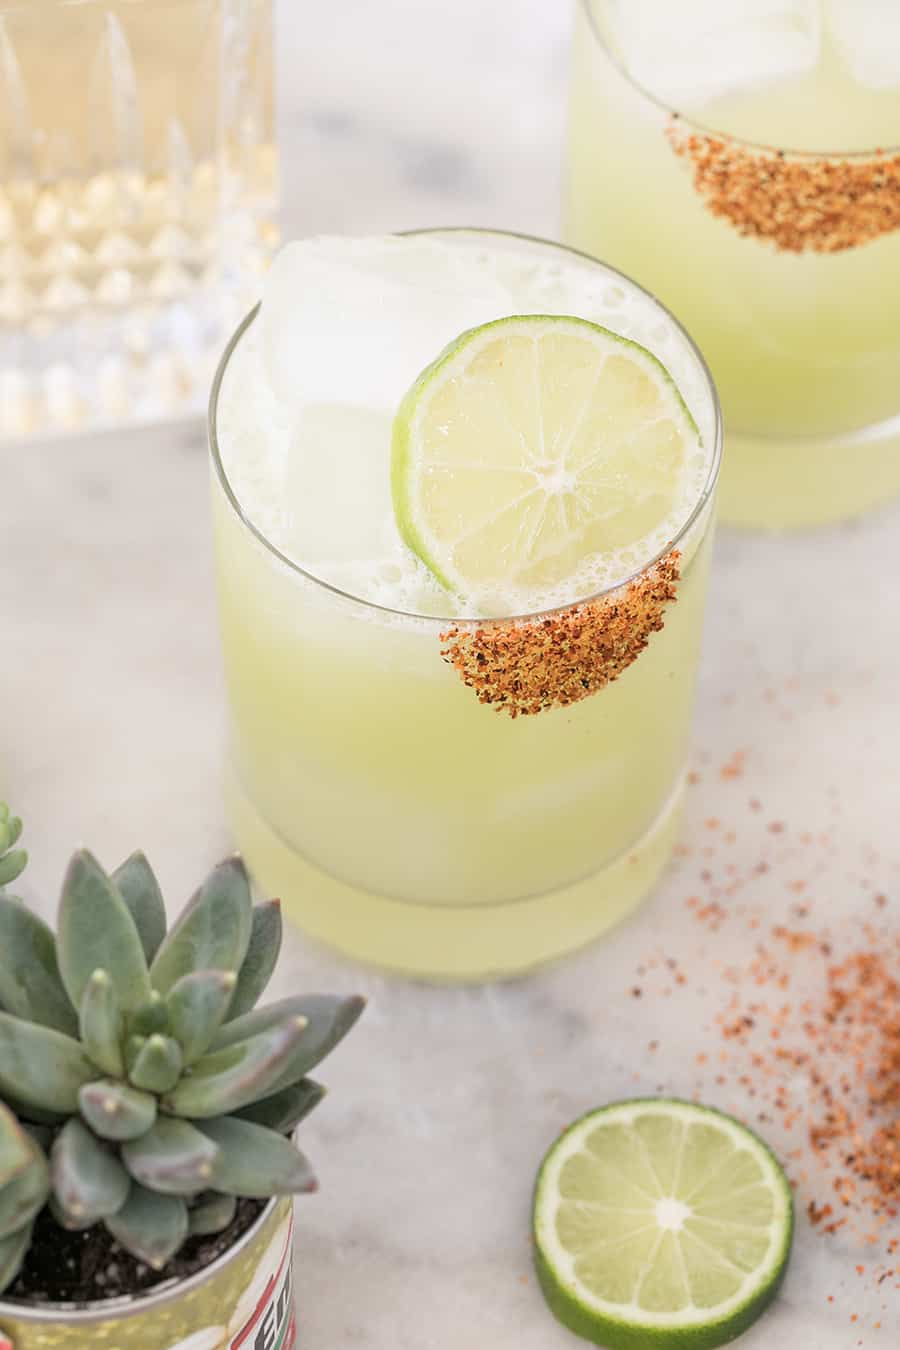 Honeydew margarita with lime slice and chili salt.